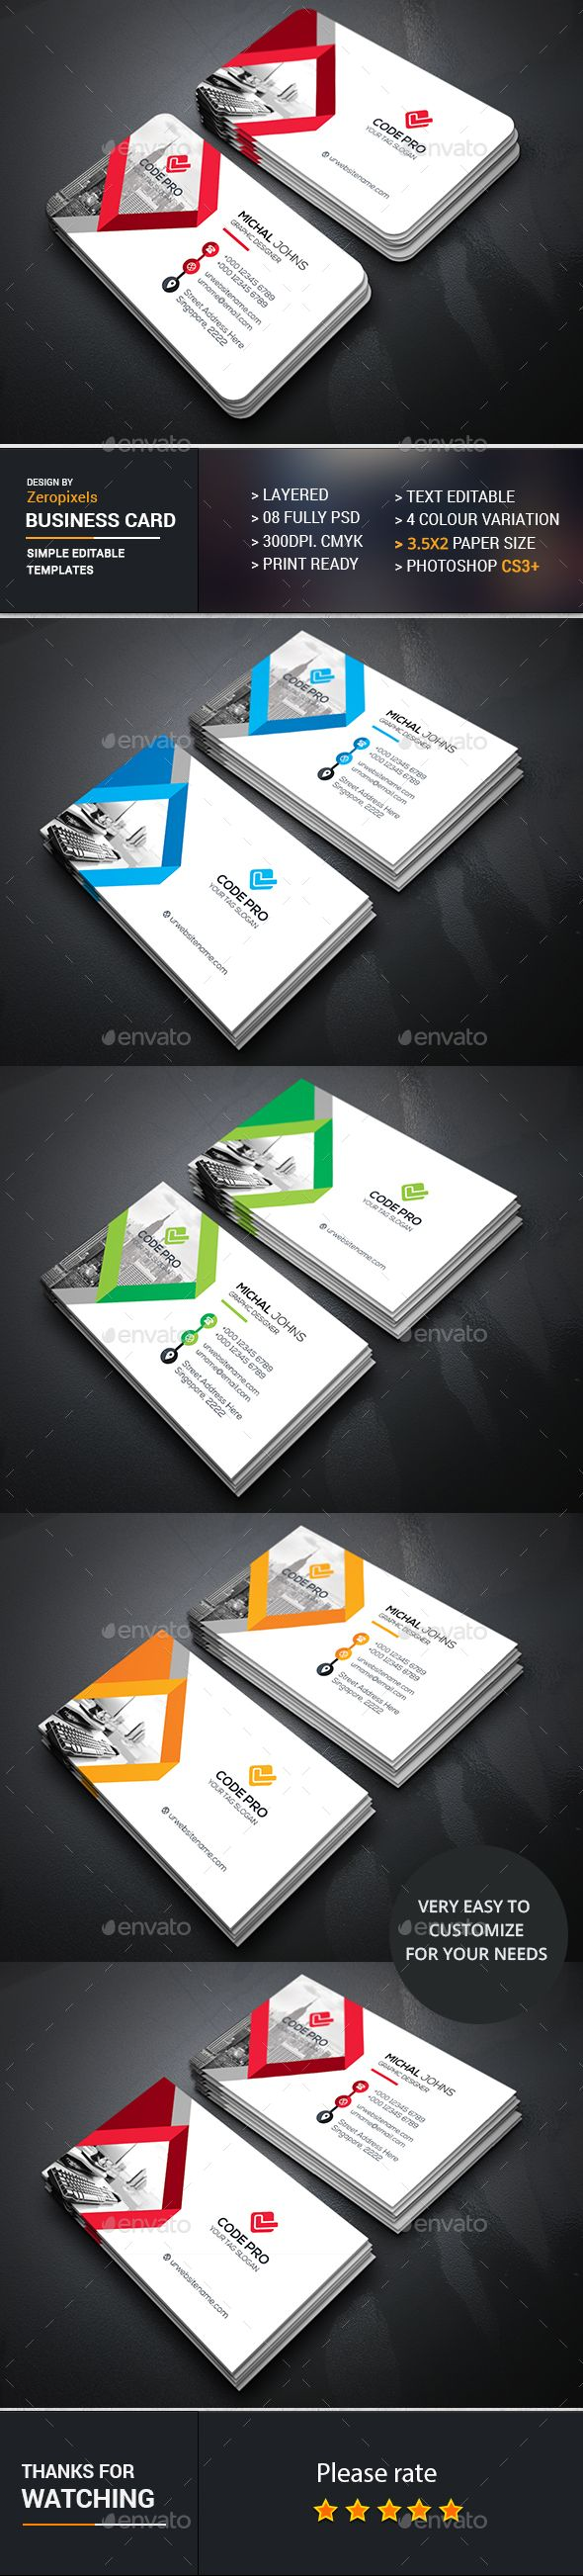 Business card design template business cards print template psd business card design template business cards print template psd download here httpsgraphicriveritembusiness card16938150srank197ref reheart Gallery